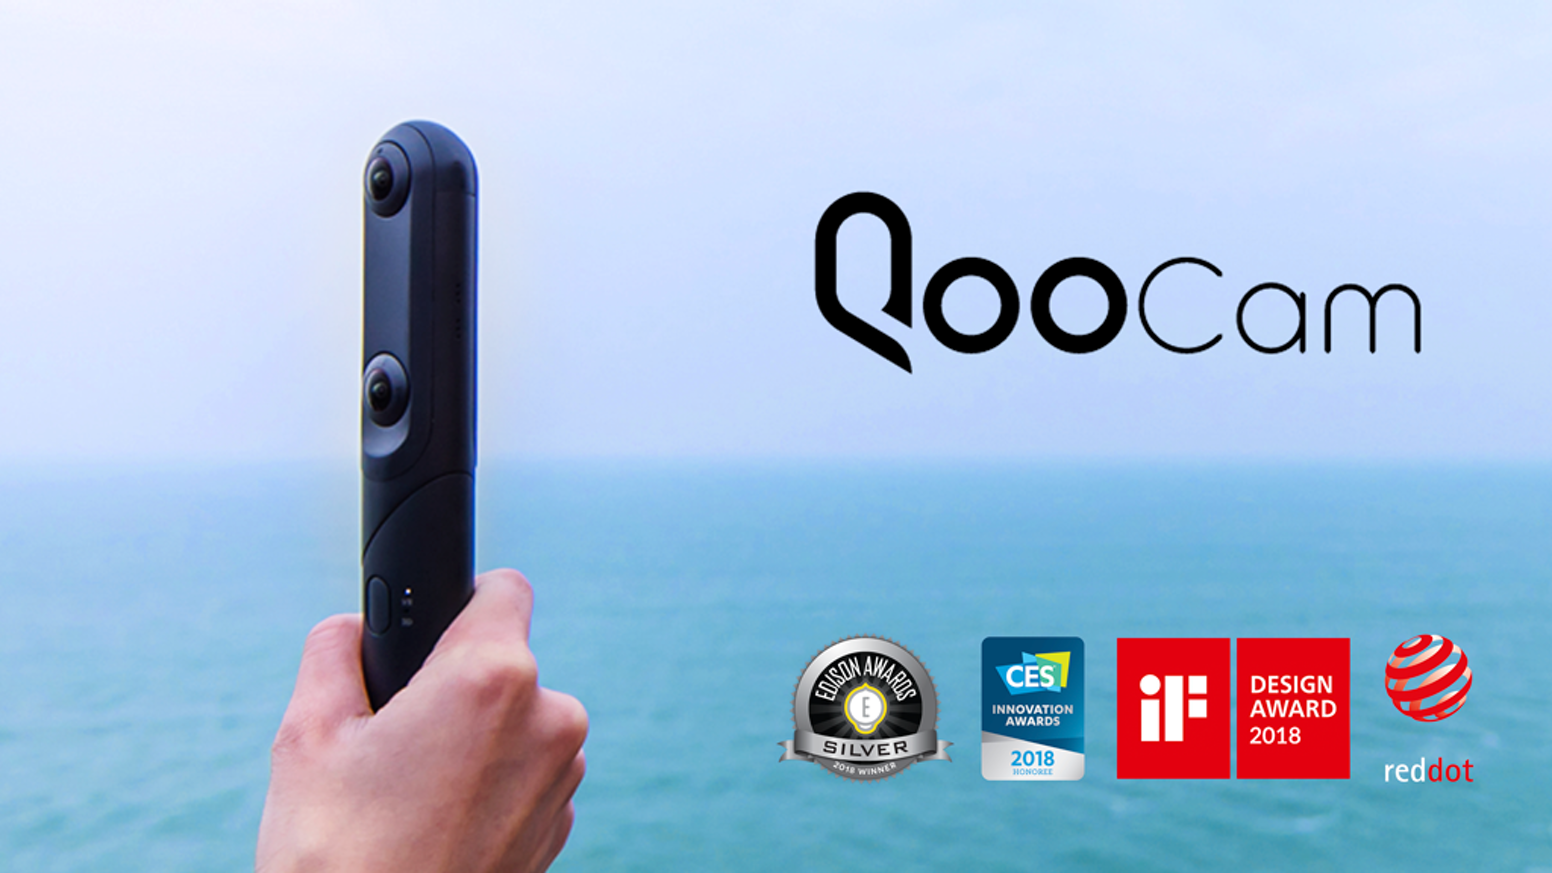 QooCam can shoot 4k 360° VR & 3D 180° video and photo. Featured Refocus, Shake-free, 120FPS, Time-lapse, Live Streaming, And App Editor